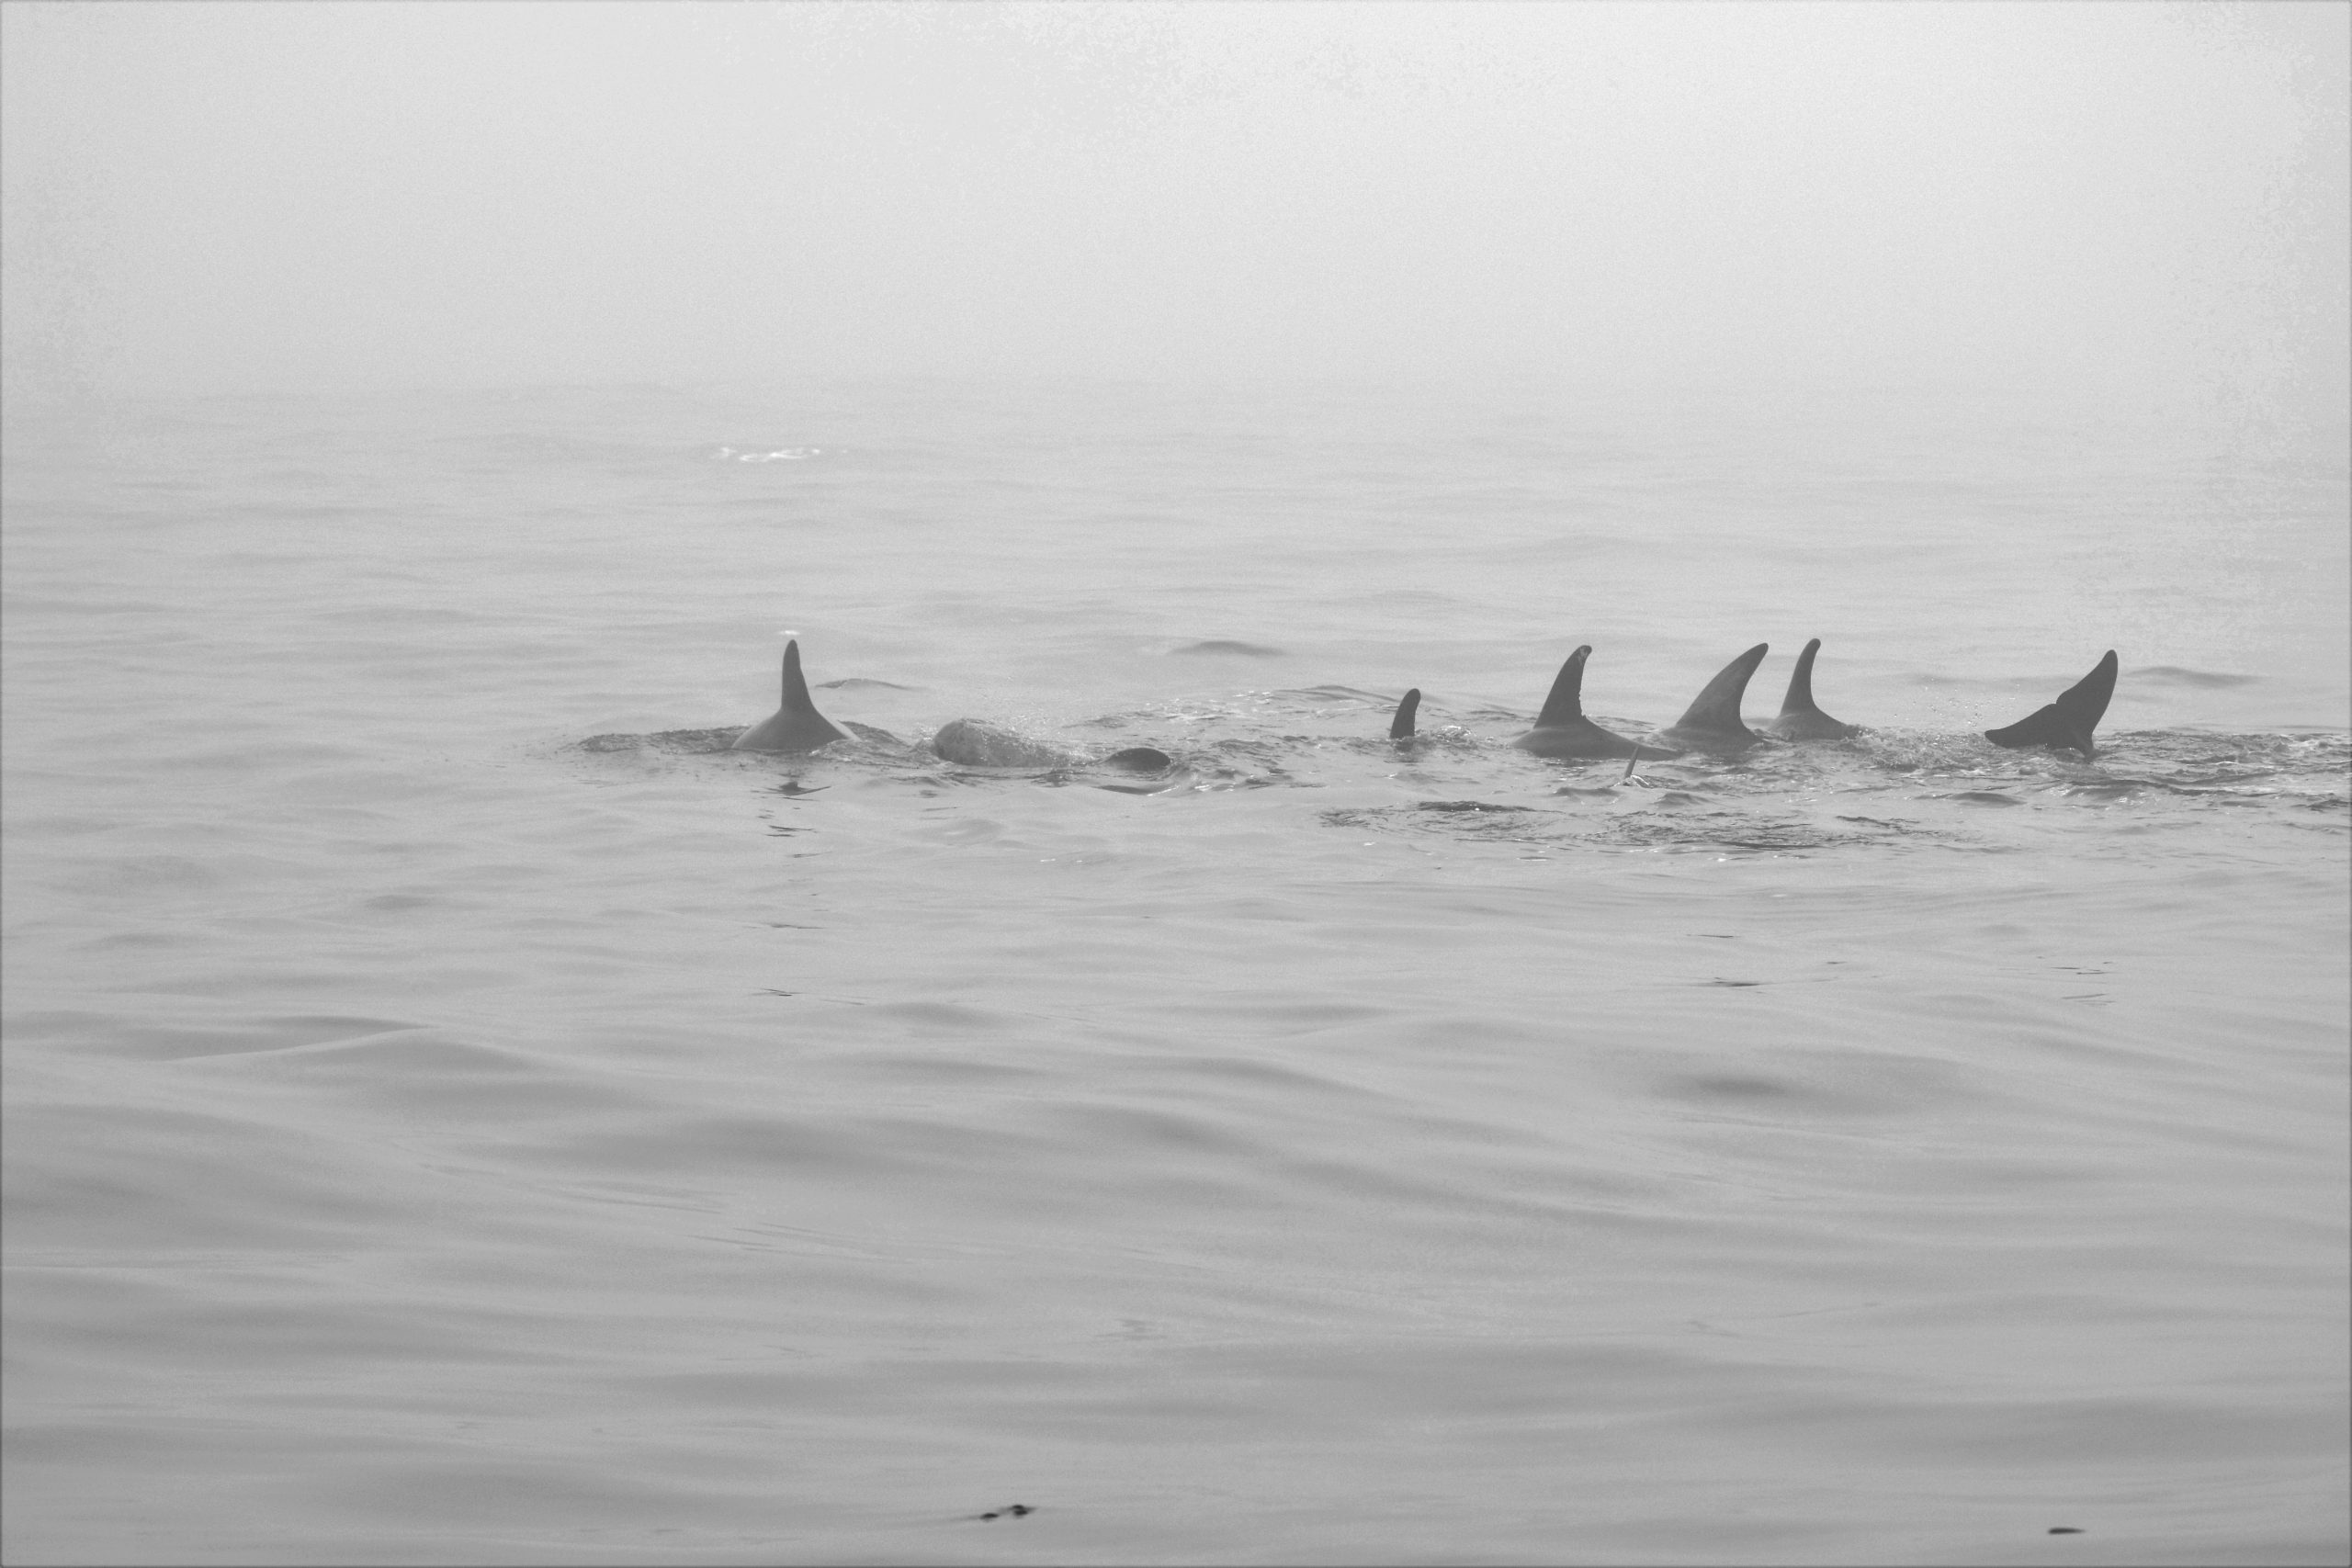 """Pod of Dolphins"" - photography, by Awais Riaz, M.D., Ph.D."